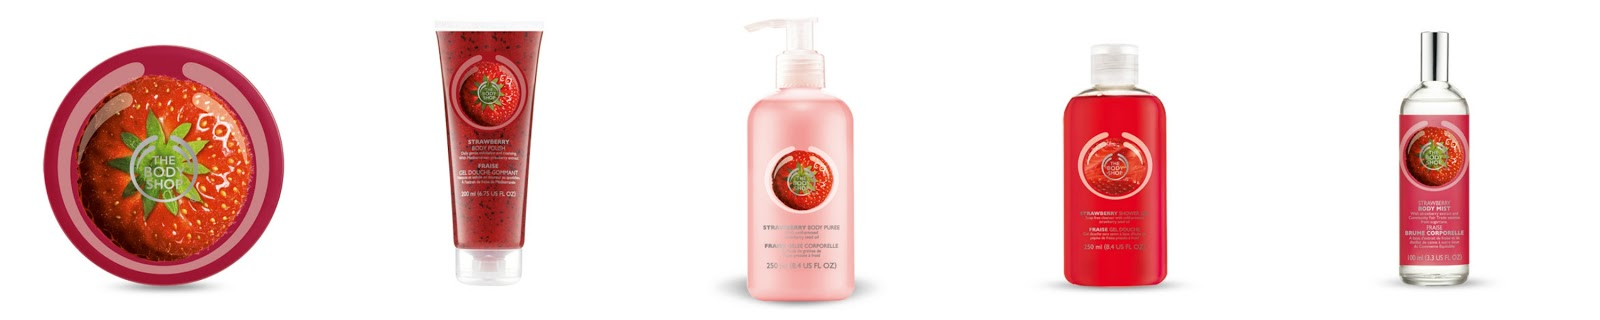 The Bodyshop Strawberry range